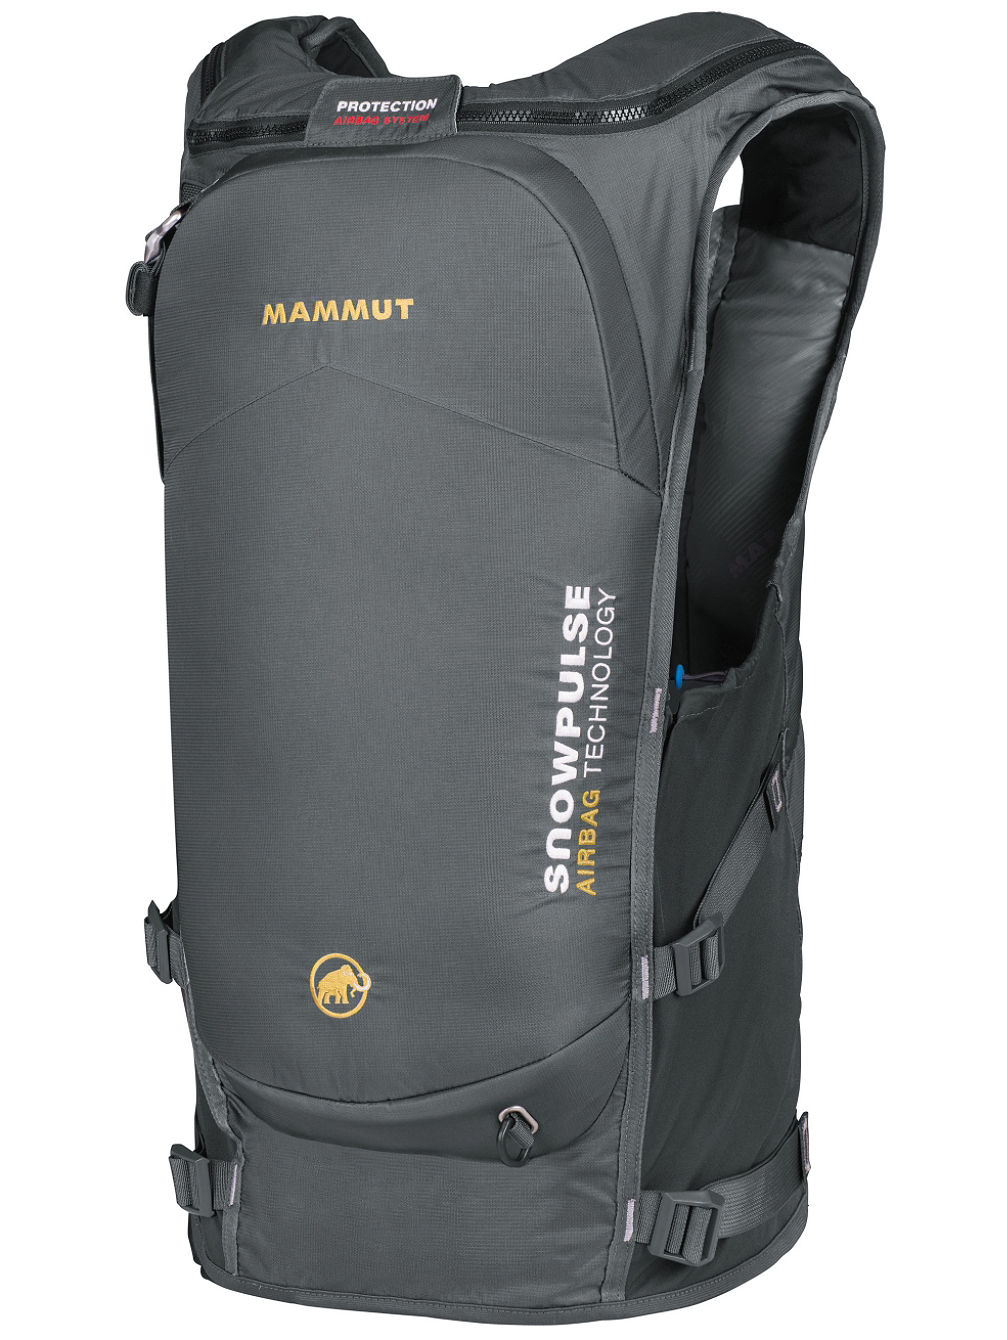 Buy Mammut Alyeska Protection Airbag Vest ready 4L online ...